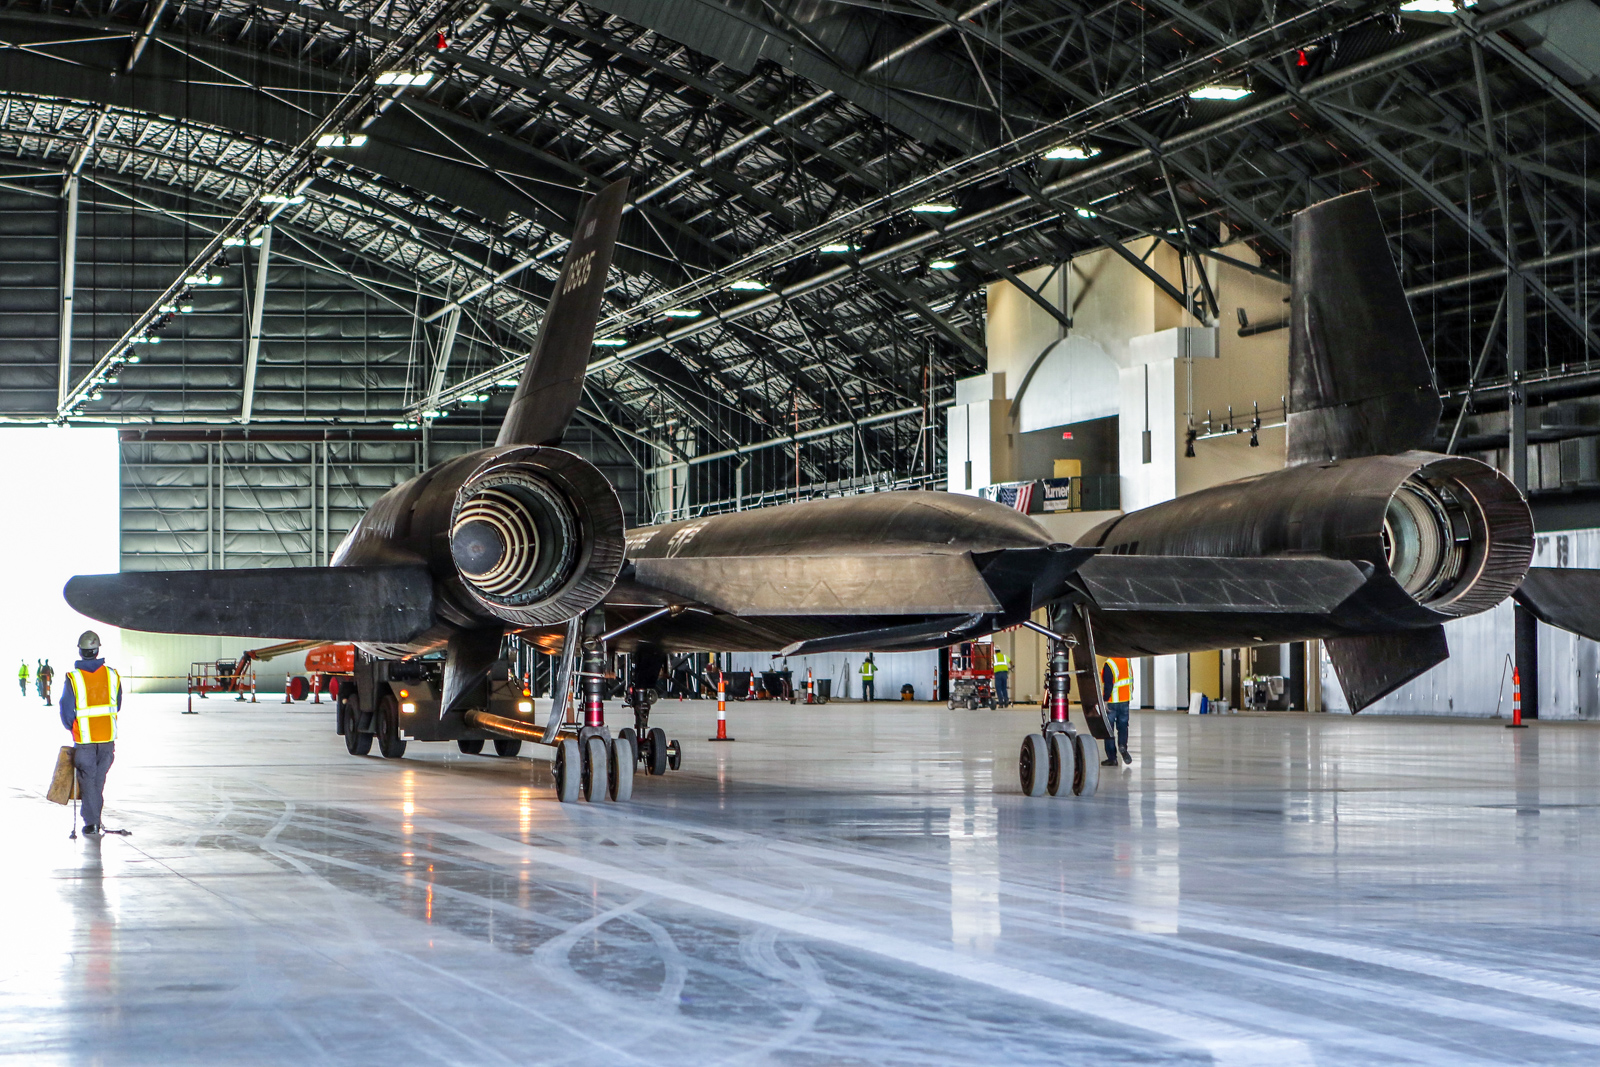 The Lockheed YF-12A safely inside the new fourth building at the National Museum of the U.S. Air Force on Oct. 13, 2015. (U.S. Air Force photo by Don Popp)